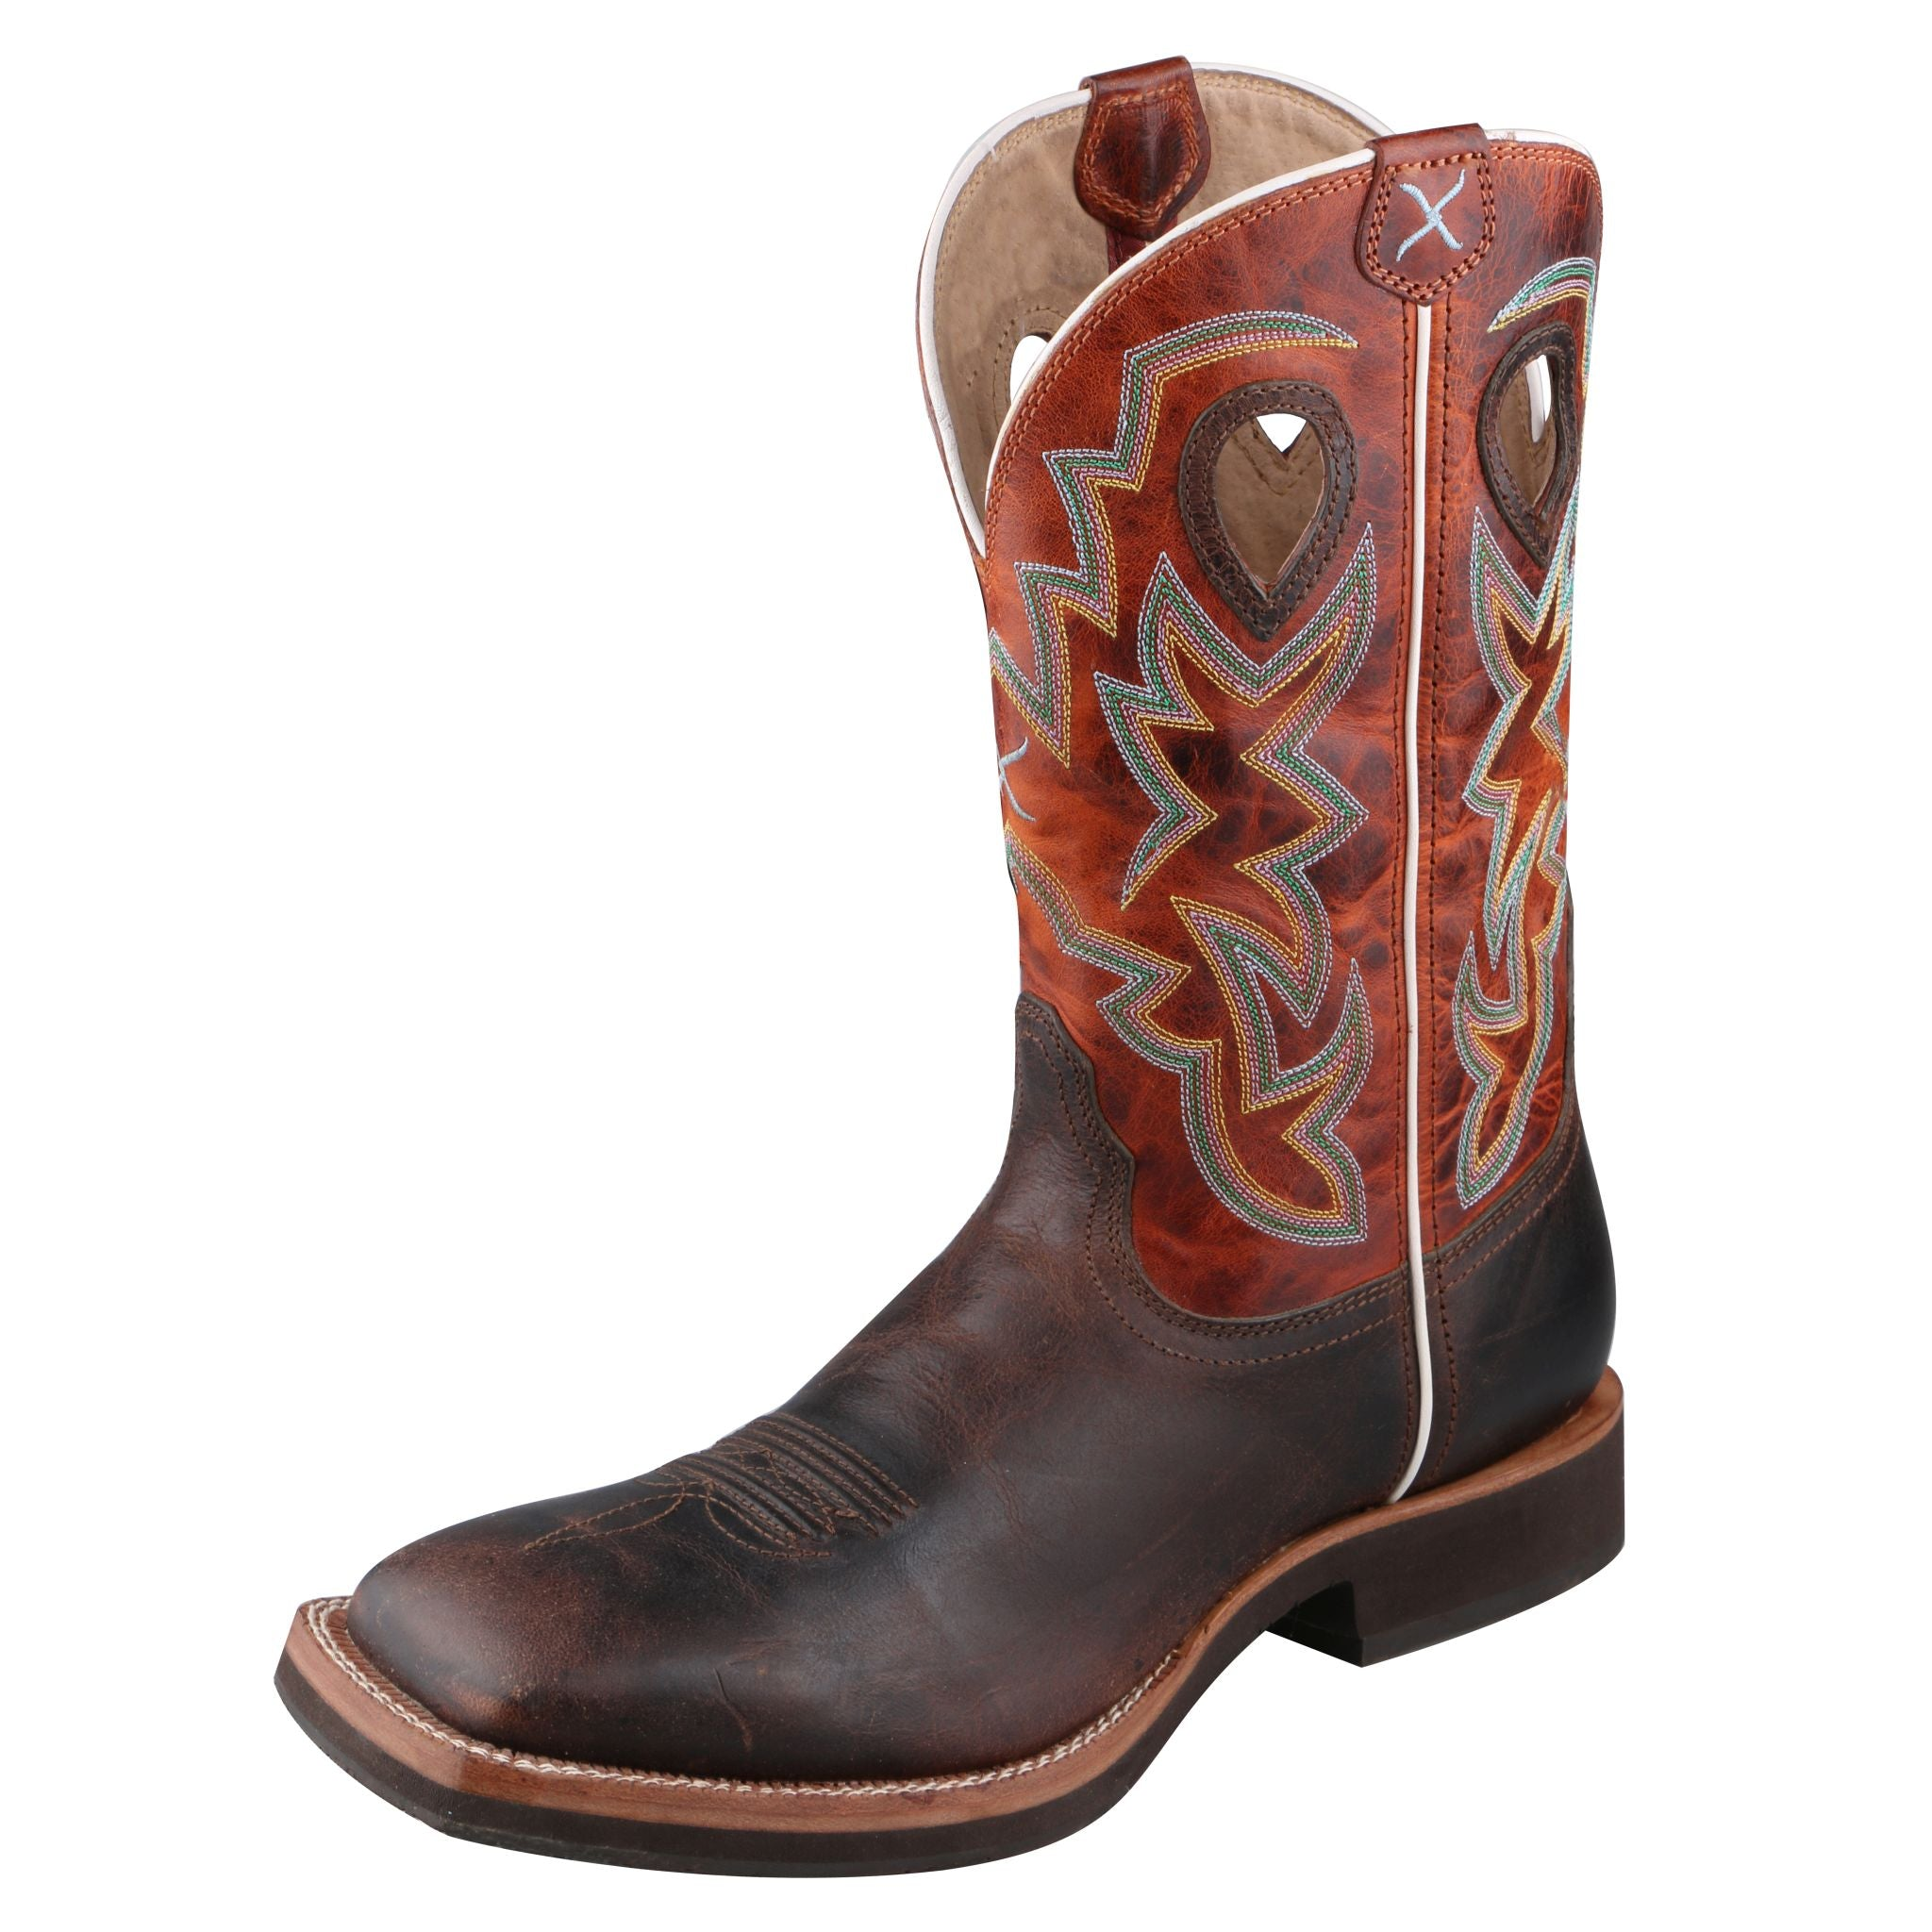 Twisted X Boots HORSEMAN - MHM0014 - MHM0014-BROWN